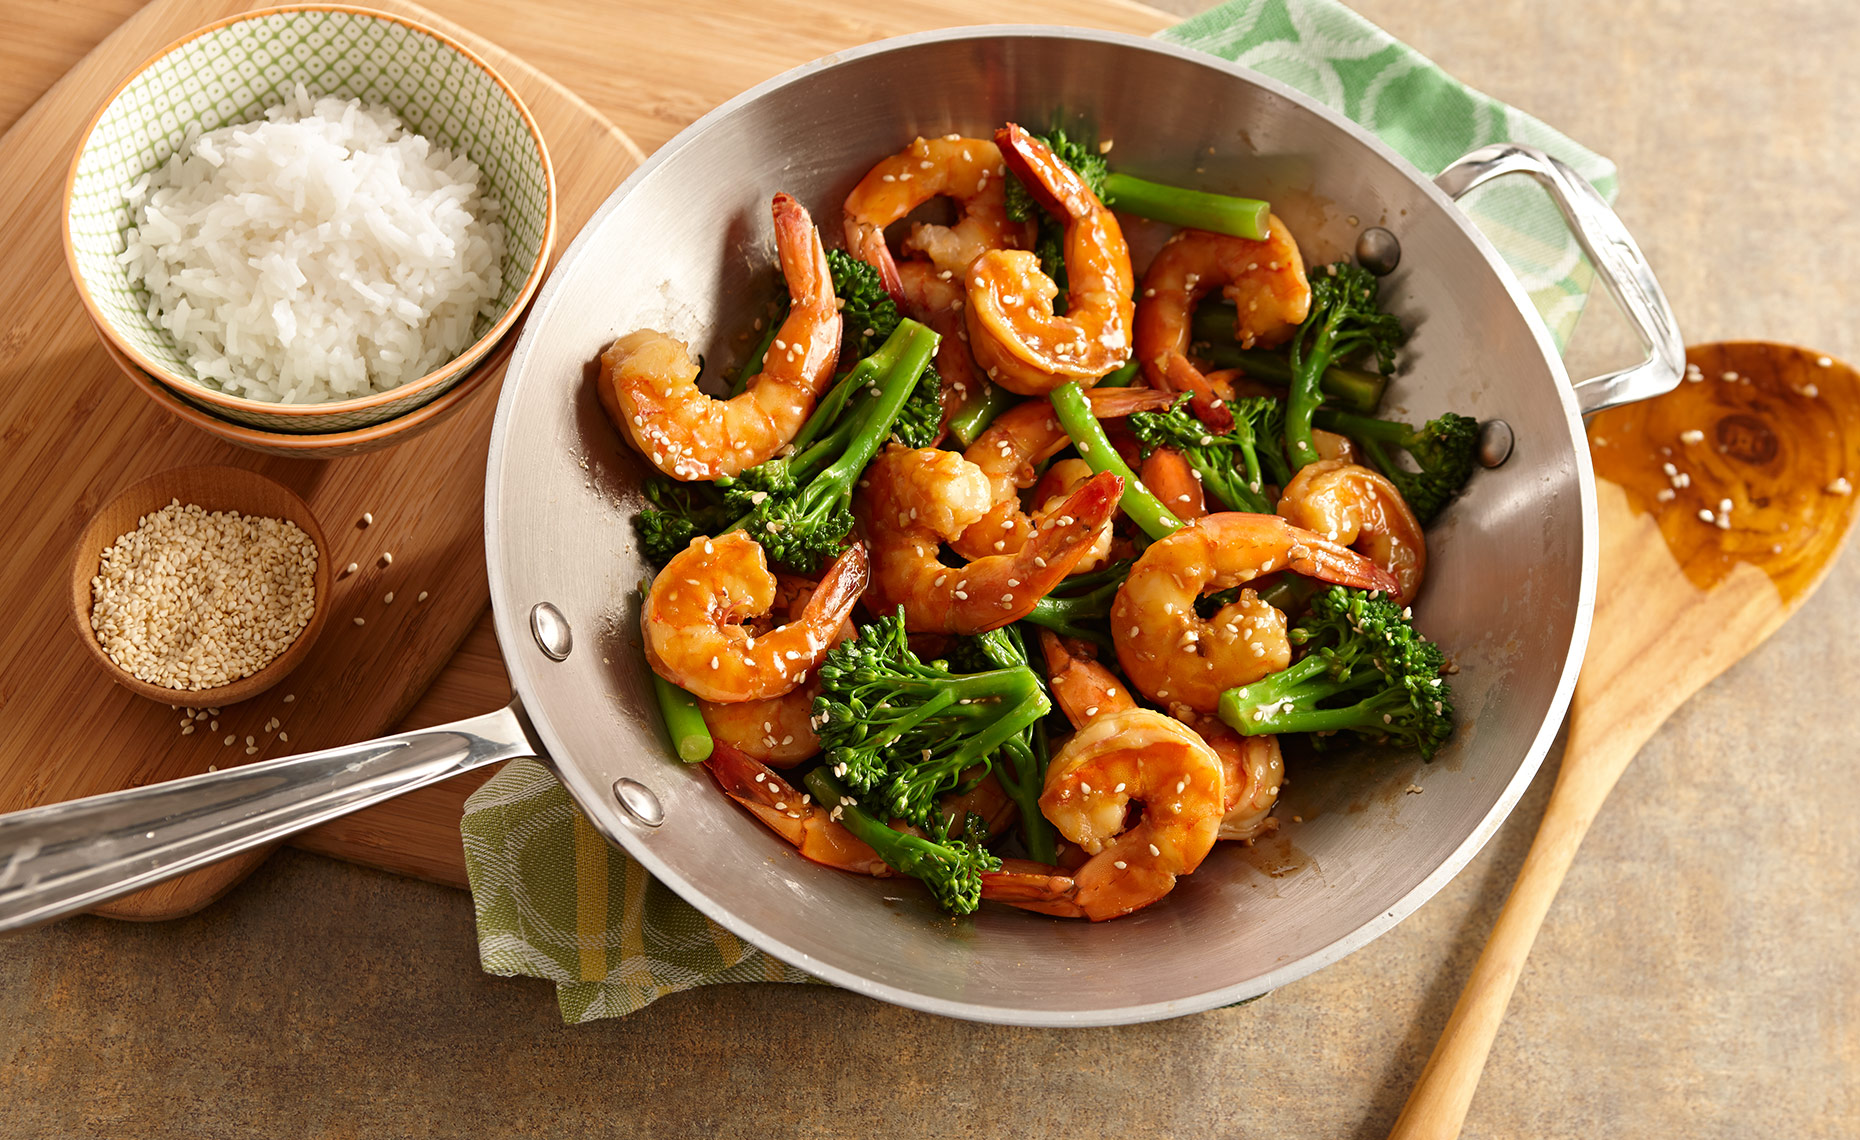 Food Photographer, Seafood Photography | Pohuski Studios,  Shrimp Broccolini Stir Fry